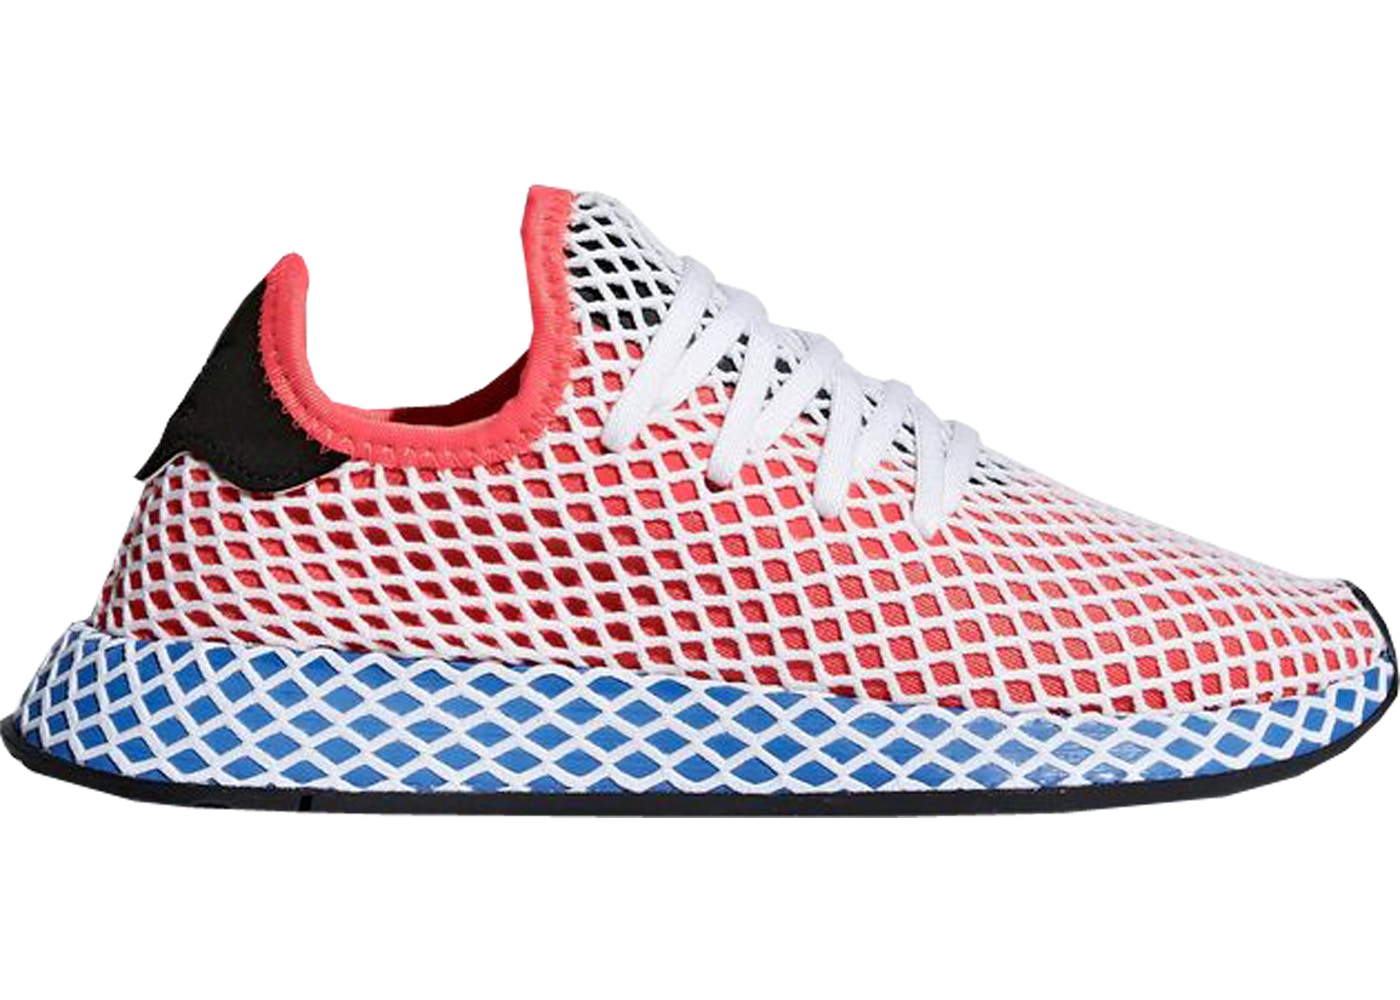 new product d7ea2 7fa2d adidas Deerupt Solar Red Bluebird (GS)